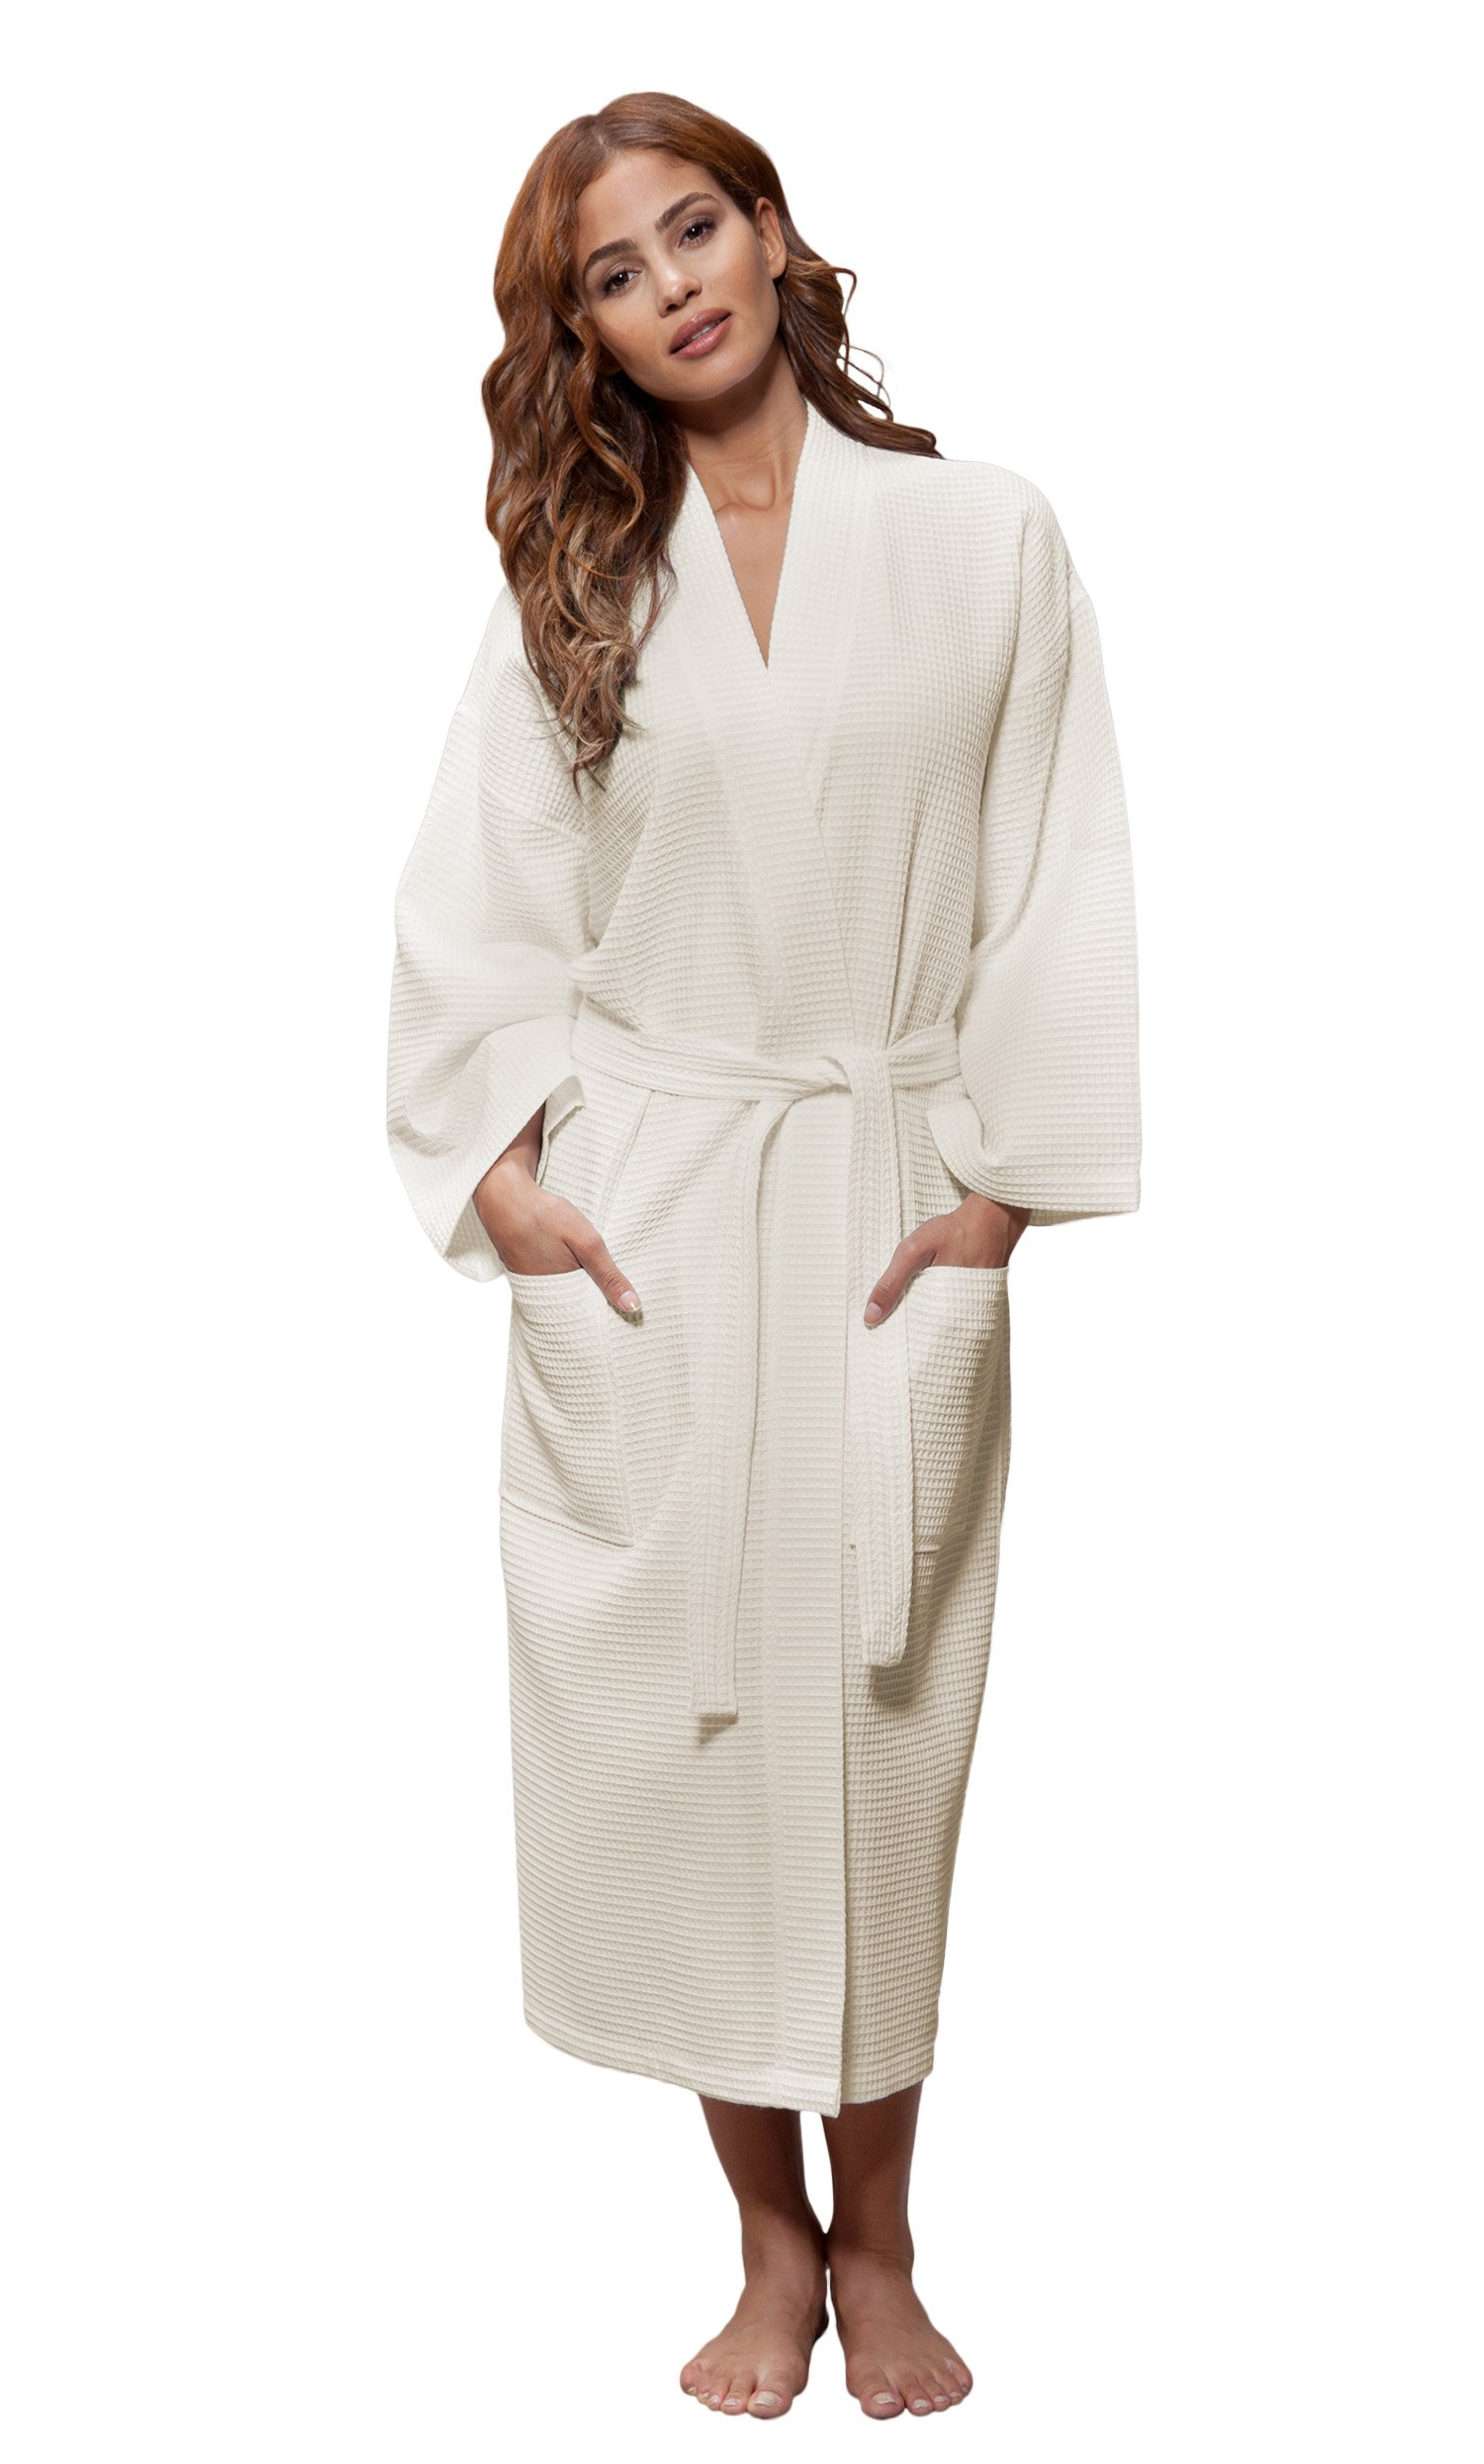 Luxury Bathrobes For Men Women 100% Pure Cotton Hooded Style Terry Towelling Lustrous Sleepwear & Robes Clothing, Shoes & Accessories